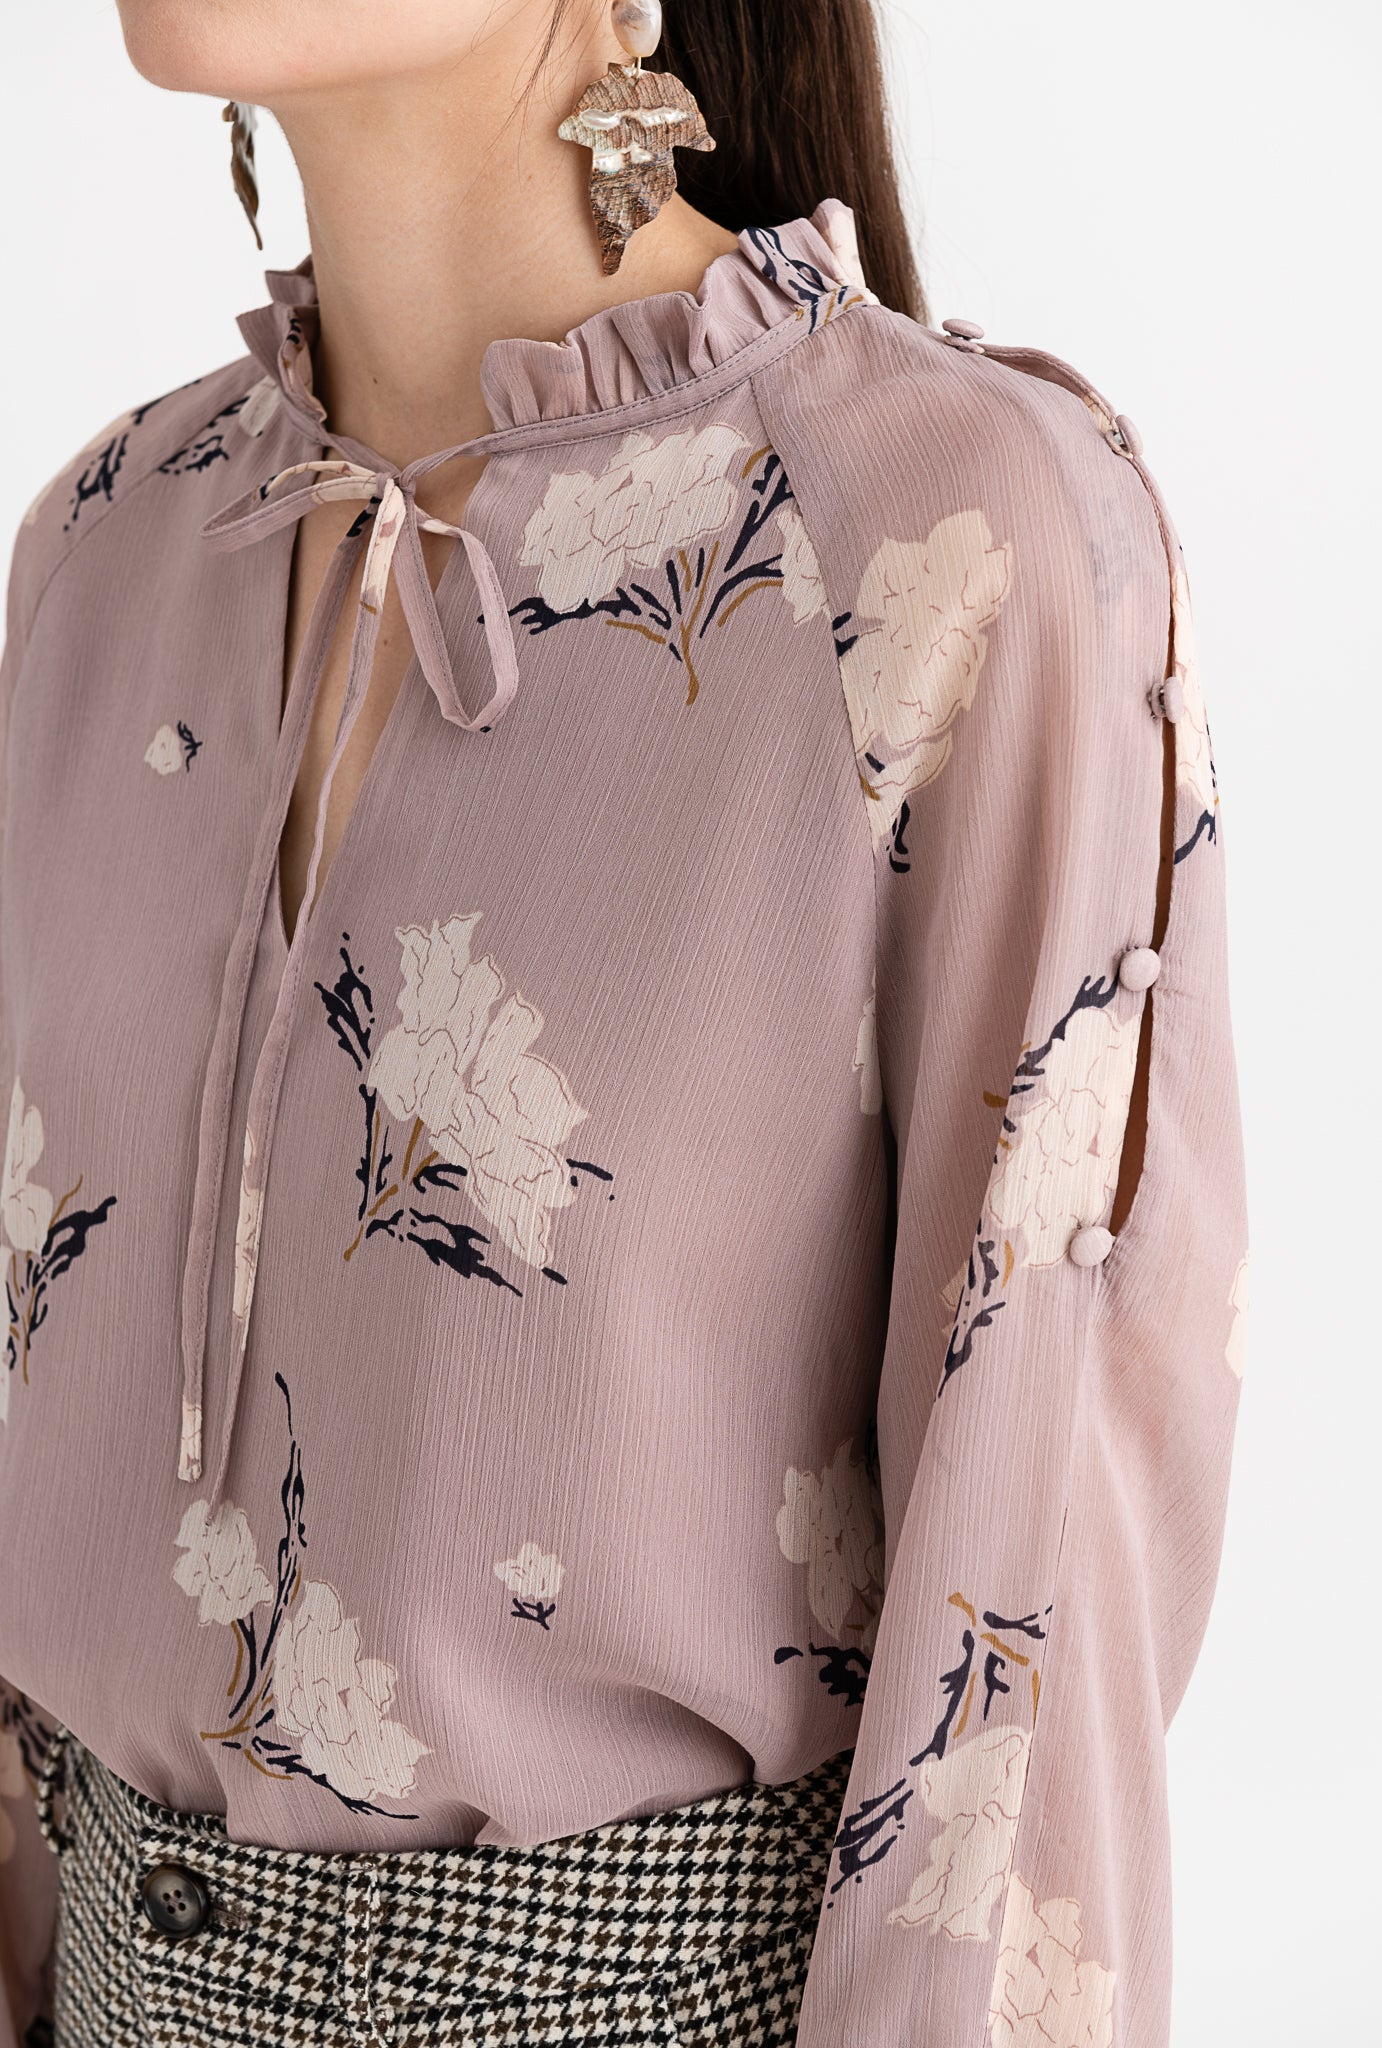 Octavia Top - Blush Floral - Ruffled neck side-slit long sleeve top - Petite Studio NYC